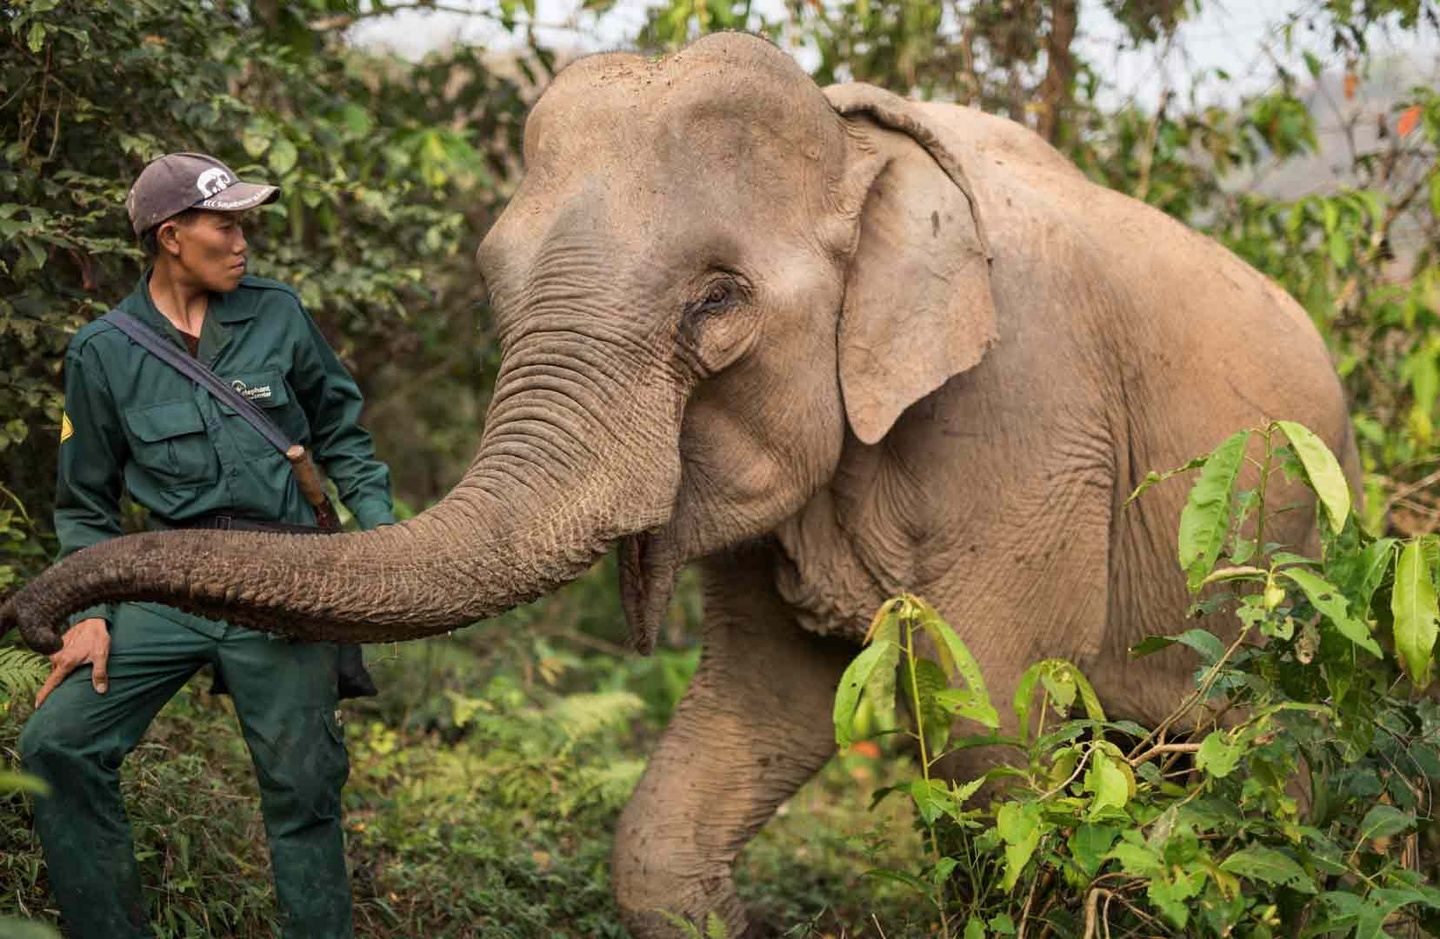 Elephant Conservation Volunteering